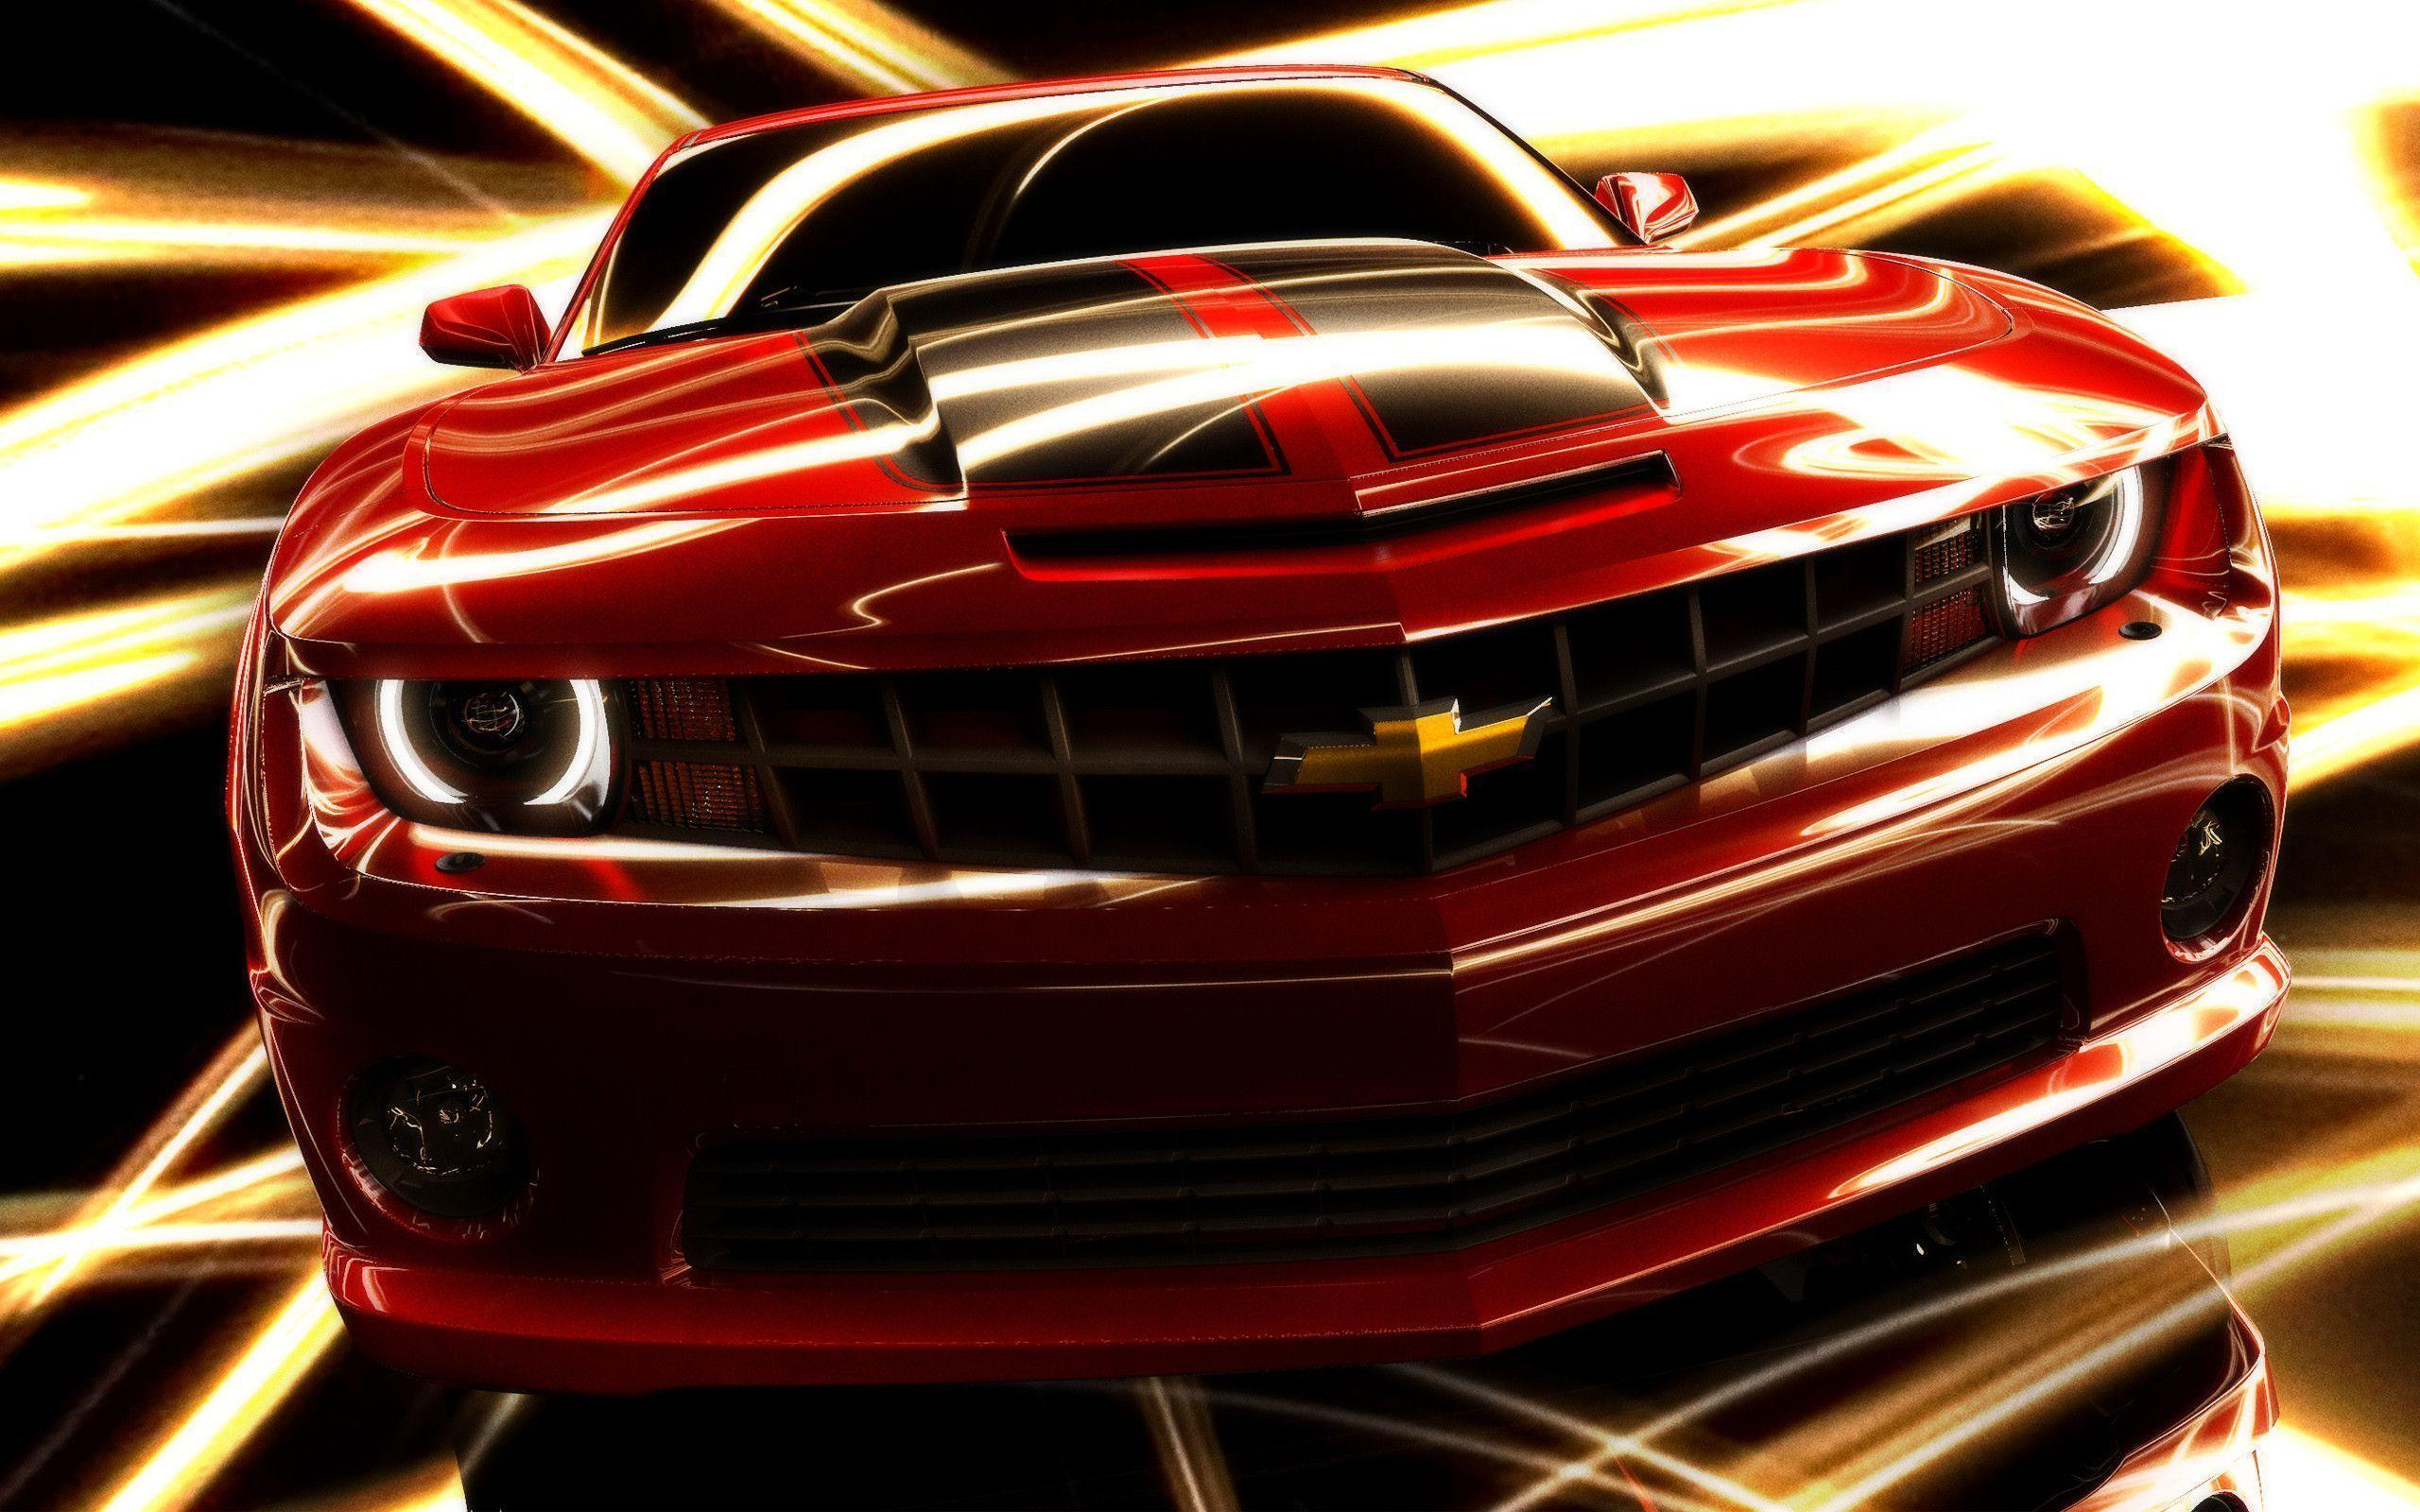 Wallpapers Tagged With CAMARO | CAMARO HD Wallpapers | Page 1